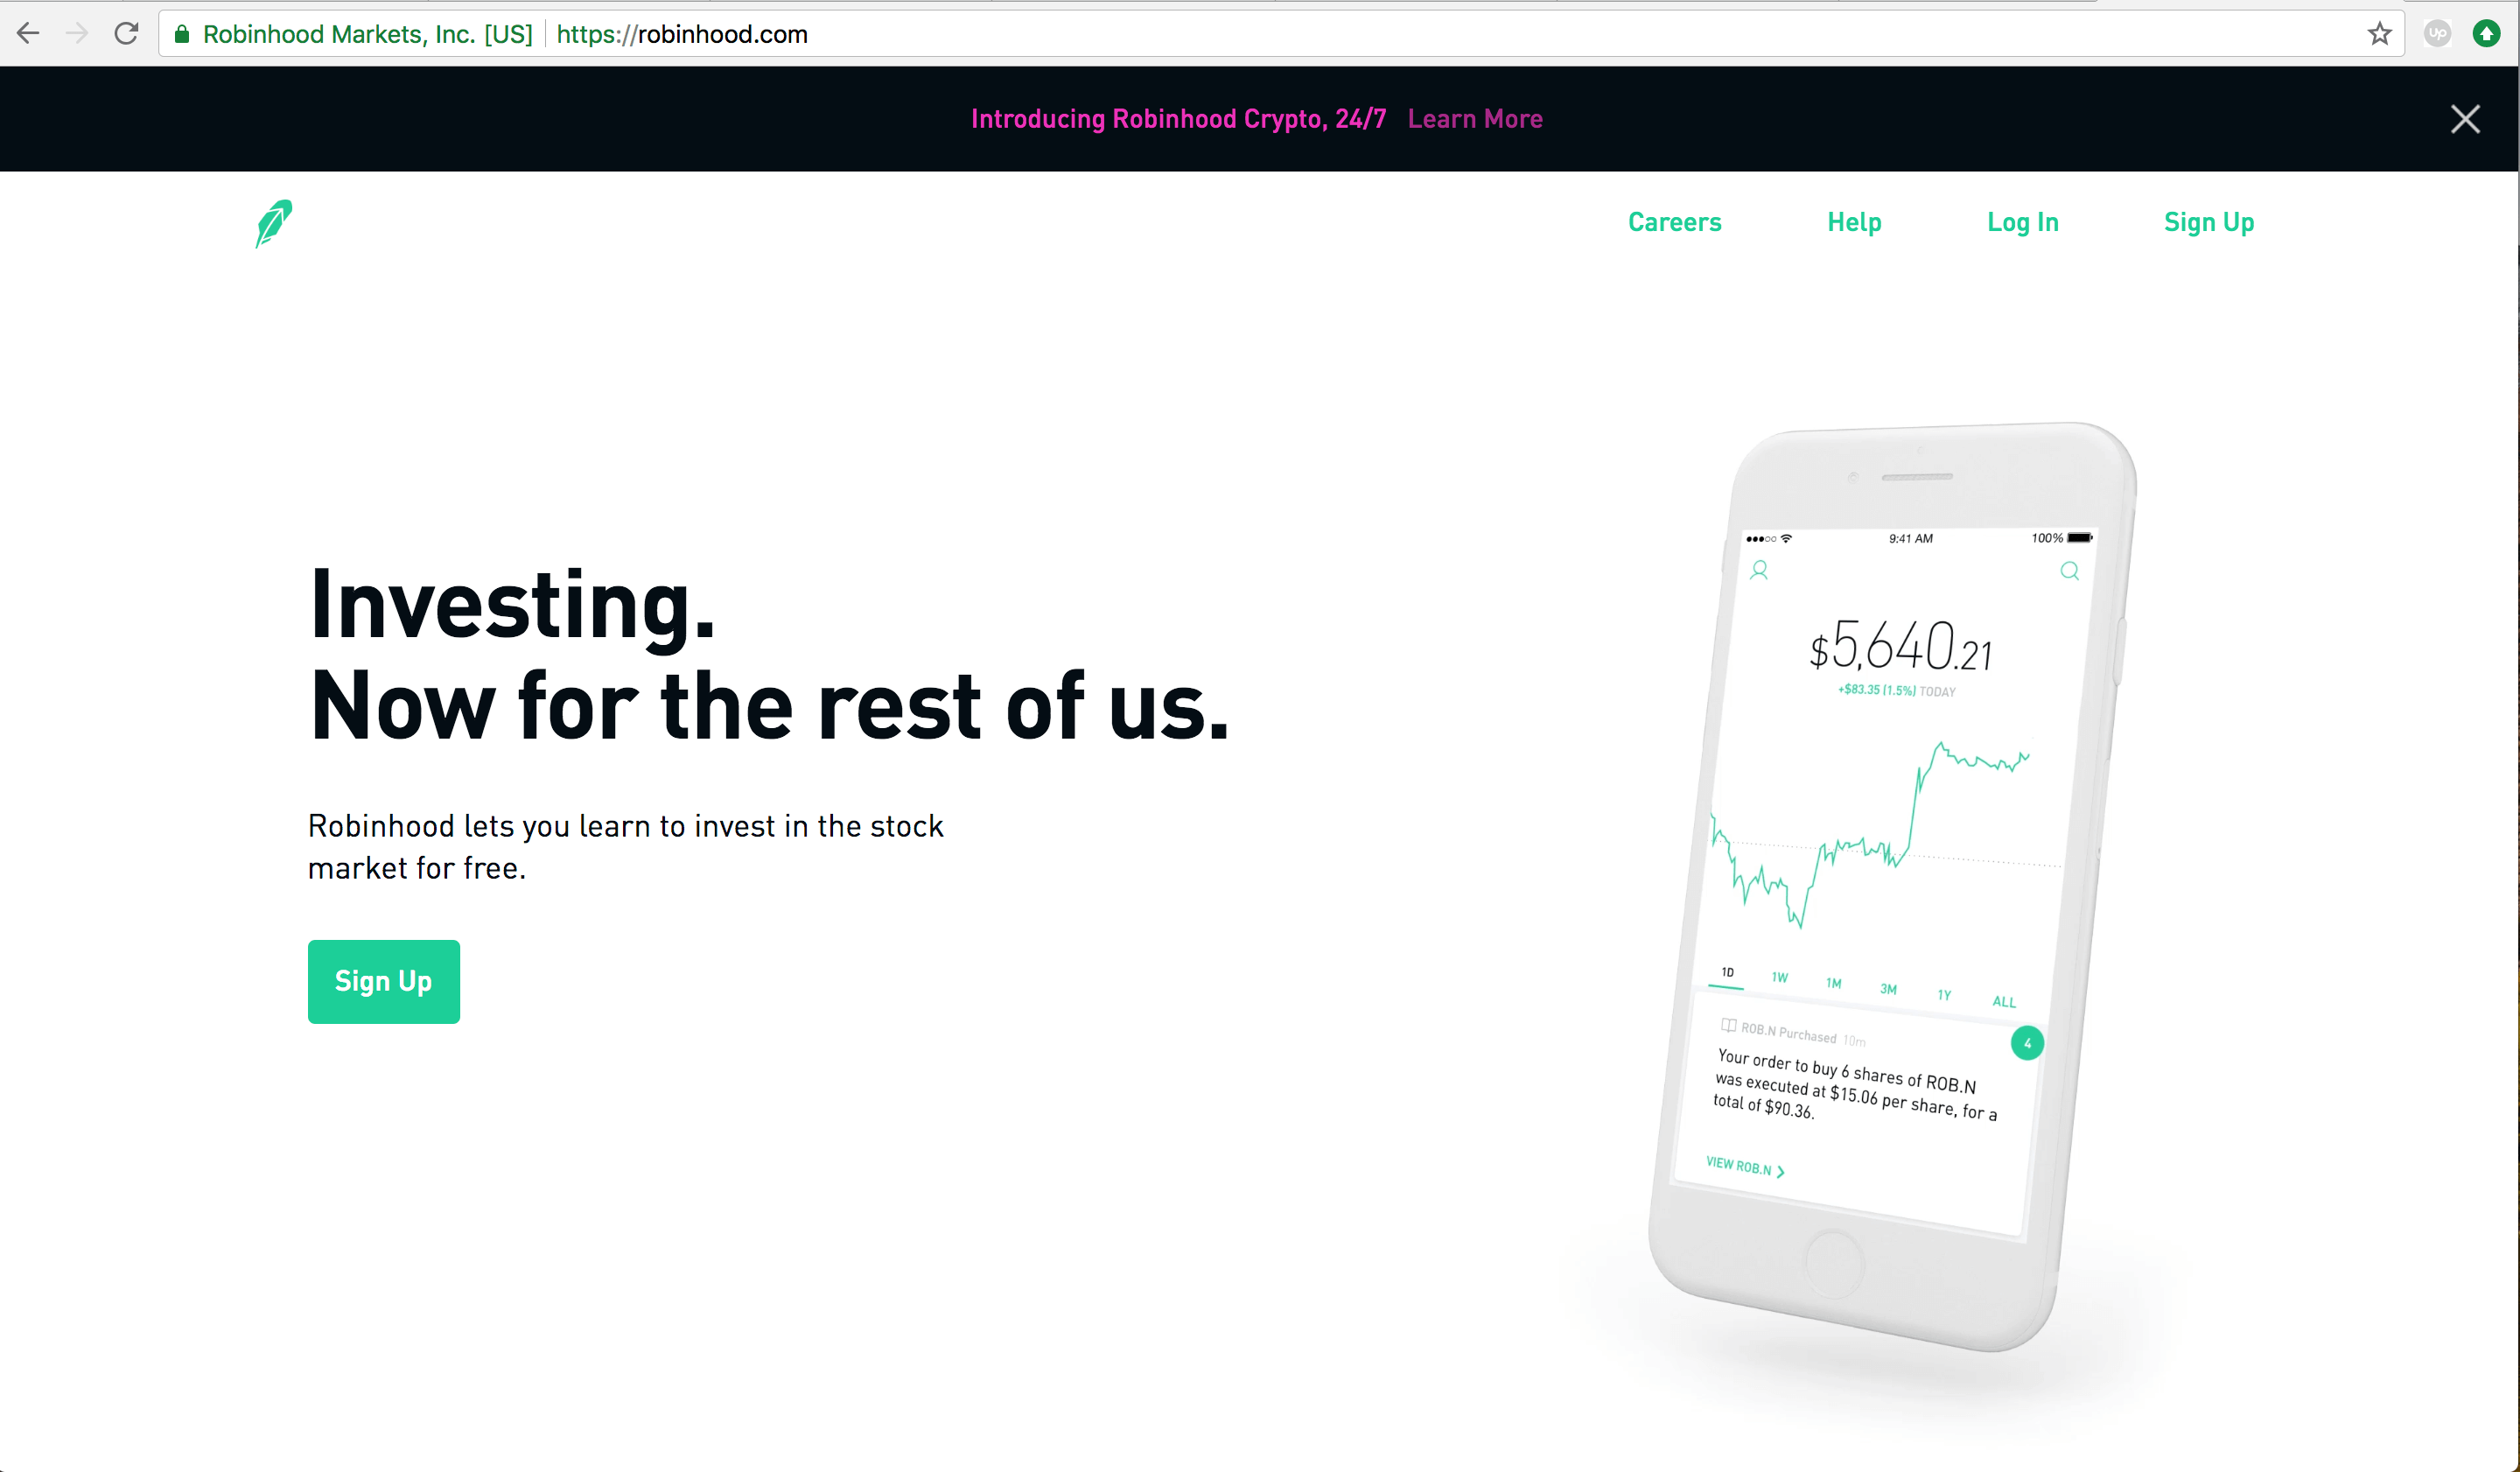 How Do I Wire Funds To My Robinhood Account